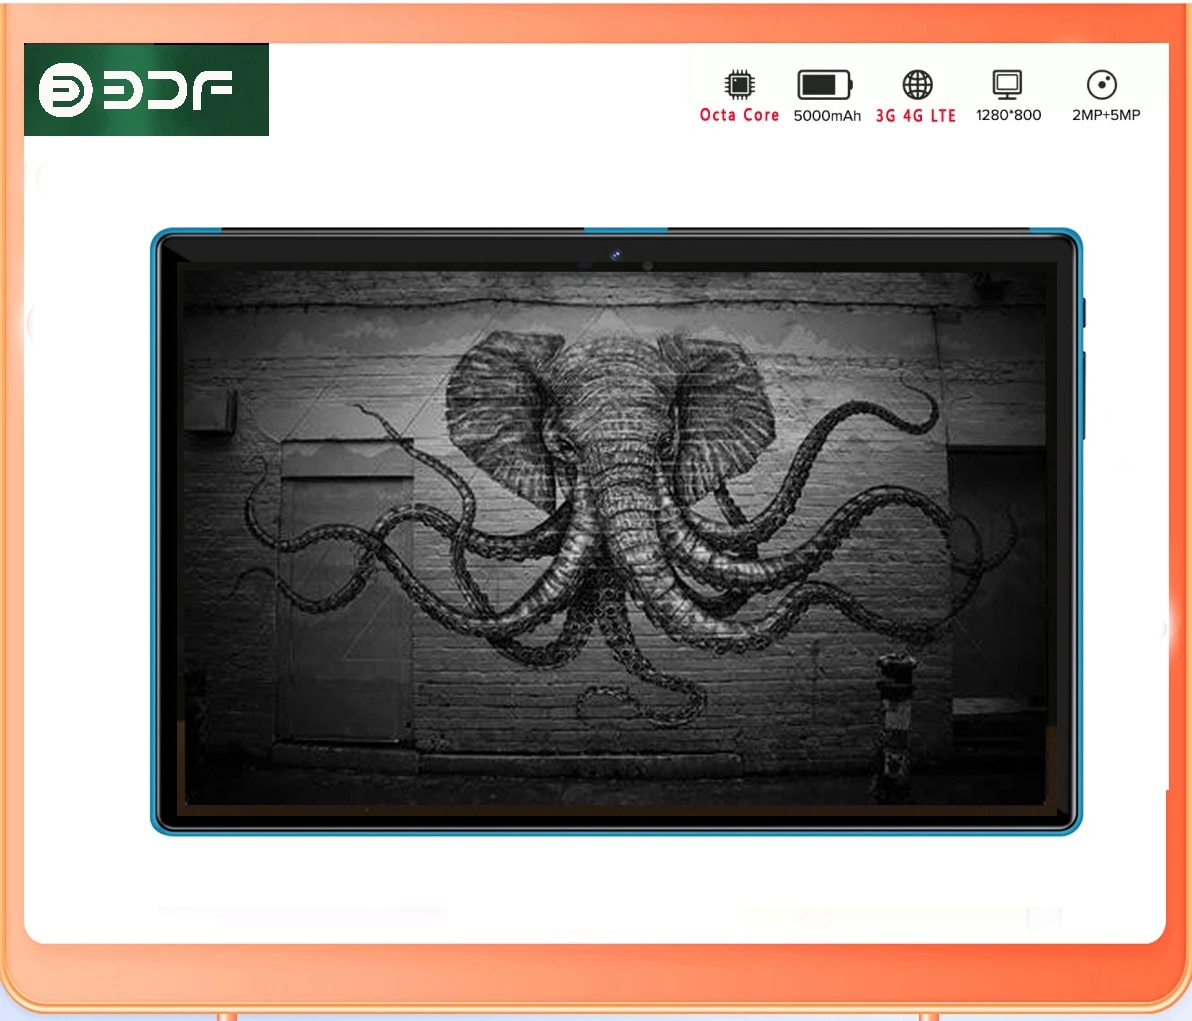 NEW 10.1 inch Tablet 4G Call Android 10 Octa Core M107 4GB RAM 64GB ROM Tab 2MP+5MP 5000mah IPS Tablet PC